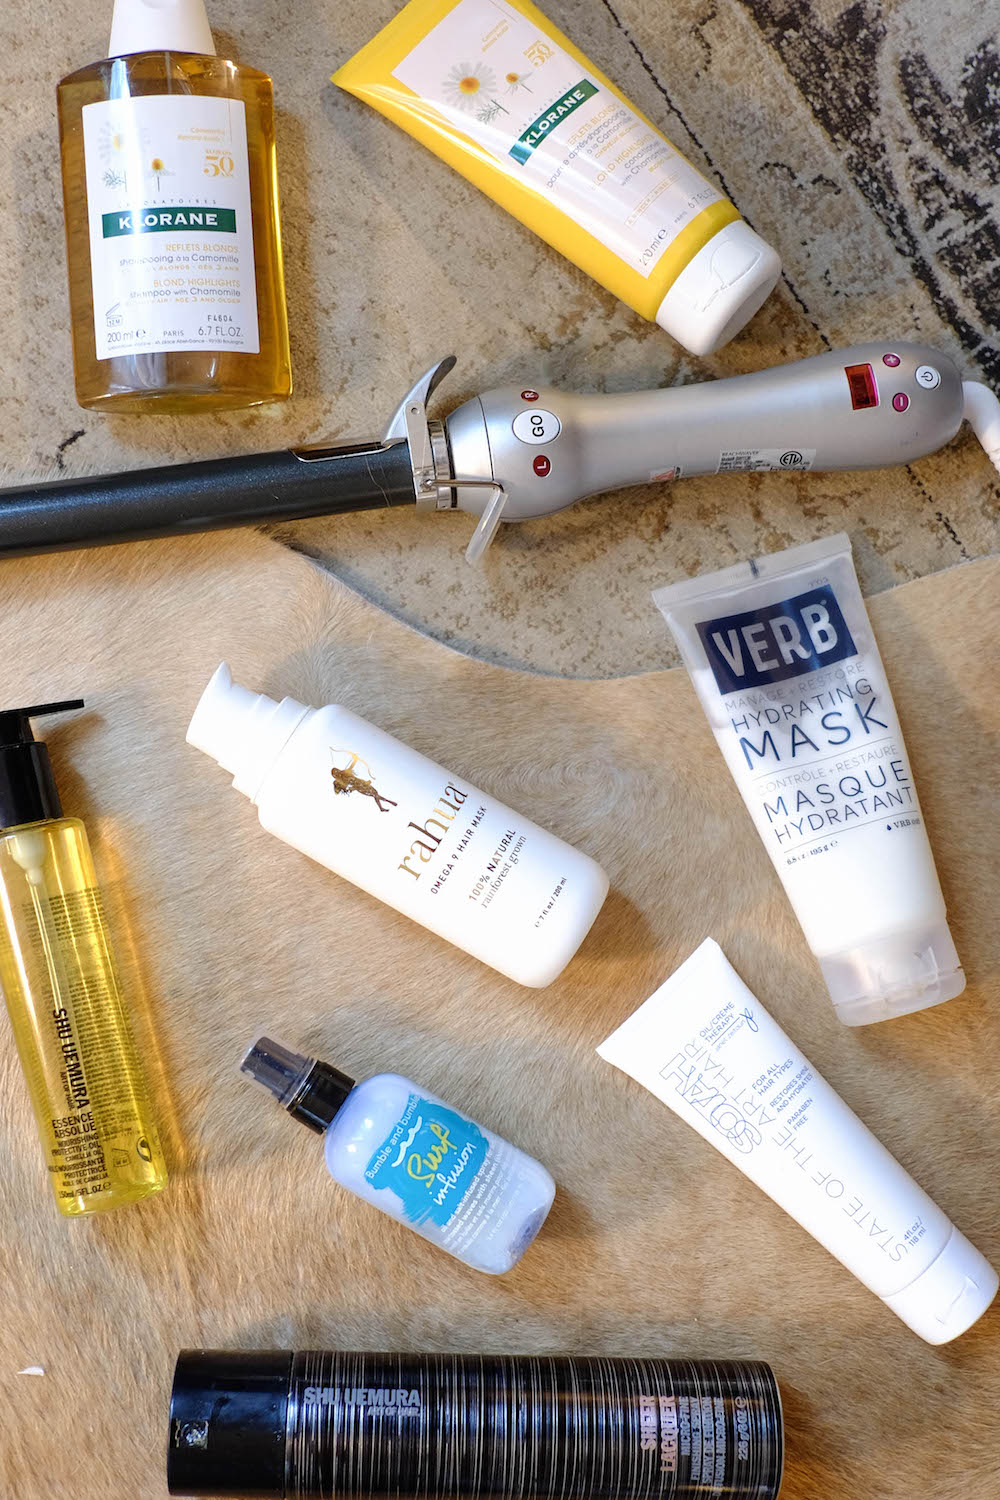 The Best Summer Hair Products - The Stripe Blog. Klorane Blond Highlights Shampoo + Conditioner, Rahua Omega 9 Hair Mask, VERB Hydrating Mask, Bumble + Bumble Surf Infusion, Shu Uemura Sheer Lacquer, Shu Uemura Essence Absolue, Sarah Potempo Beach Waver, Bulbe + Bumble Surf Infusion